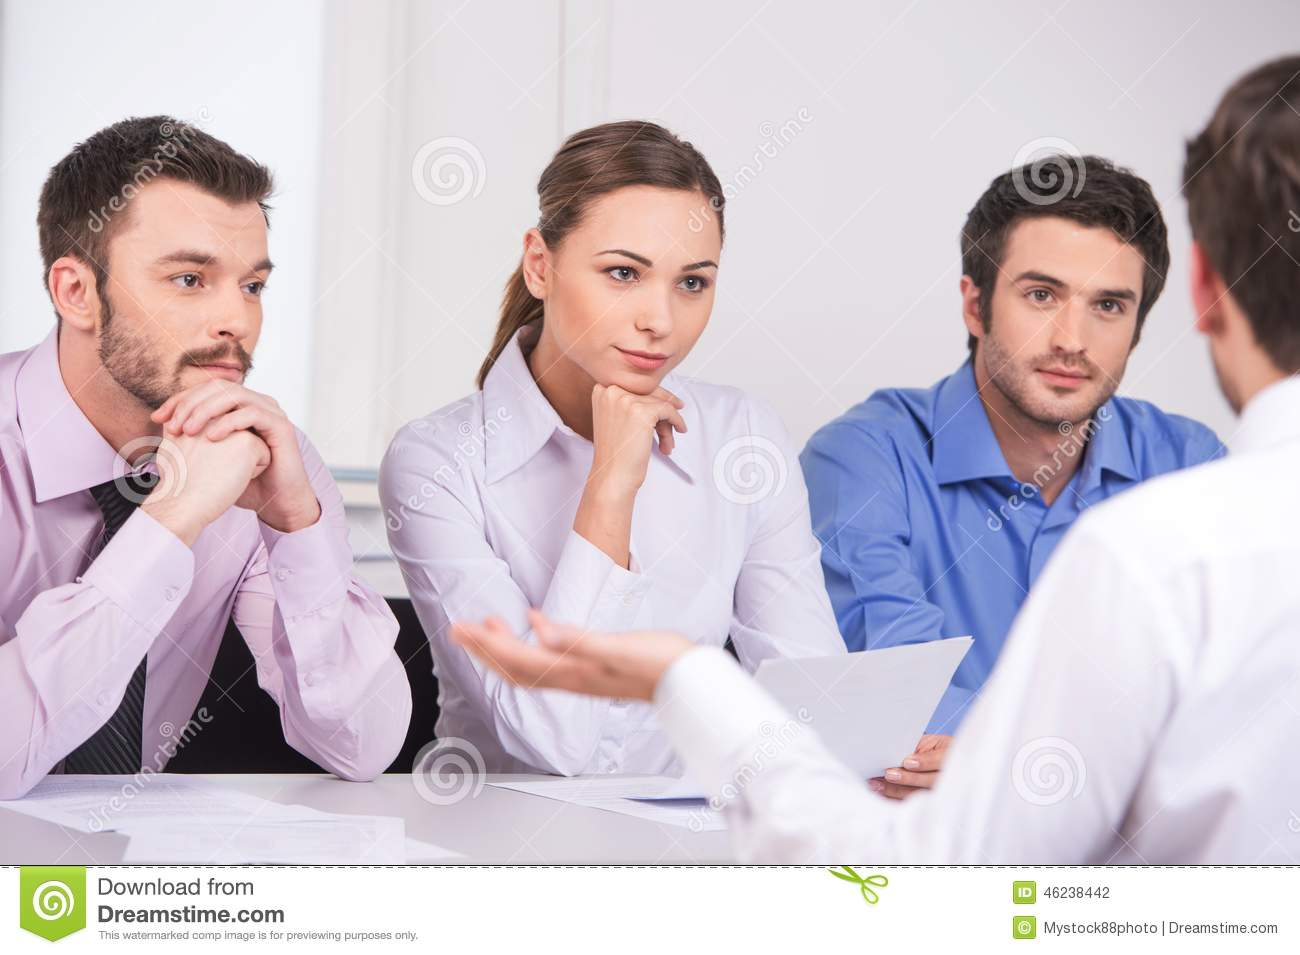 business meeting photo Are you looking for meeting vectors or photos we have 32383 free resources for you download on freepik your photos, psd, icons or vectors of meeting.